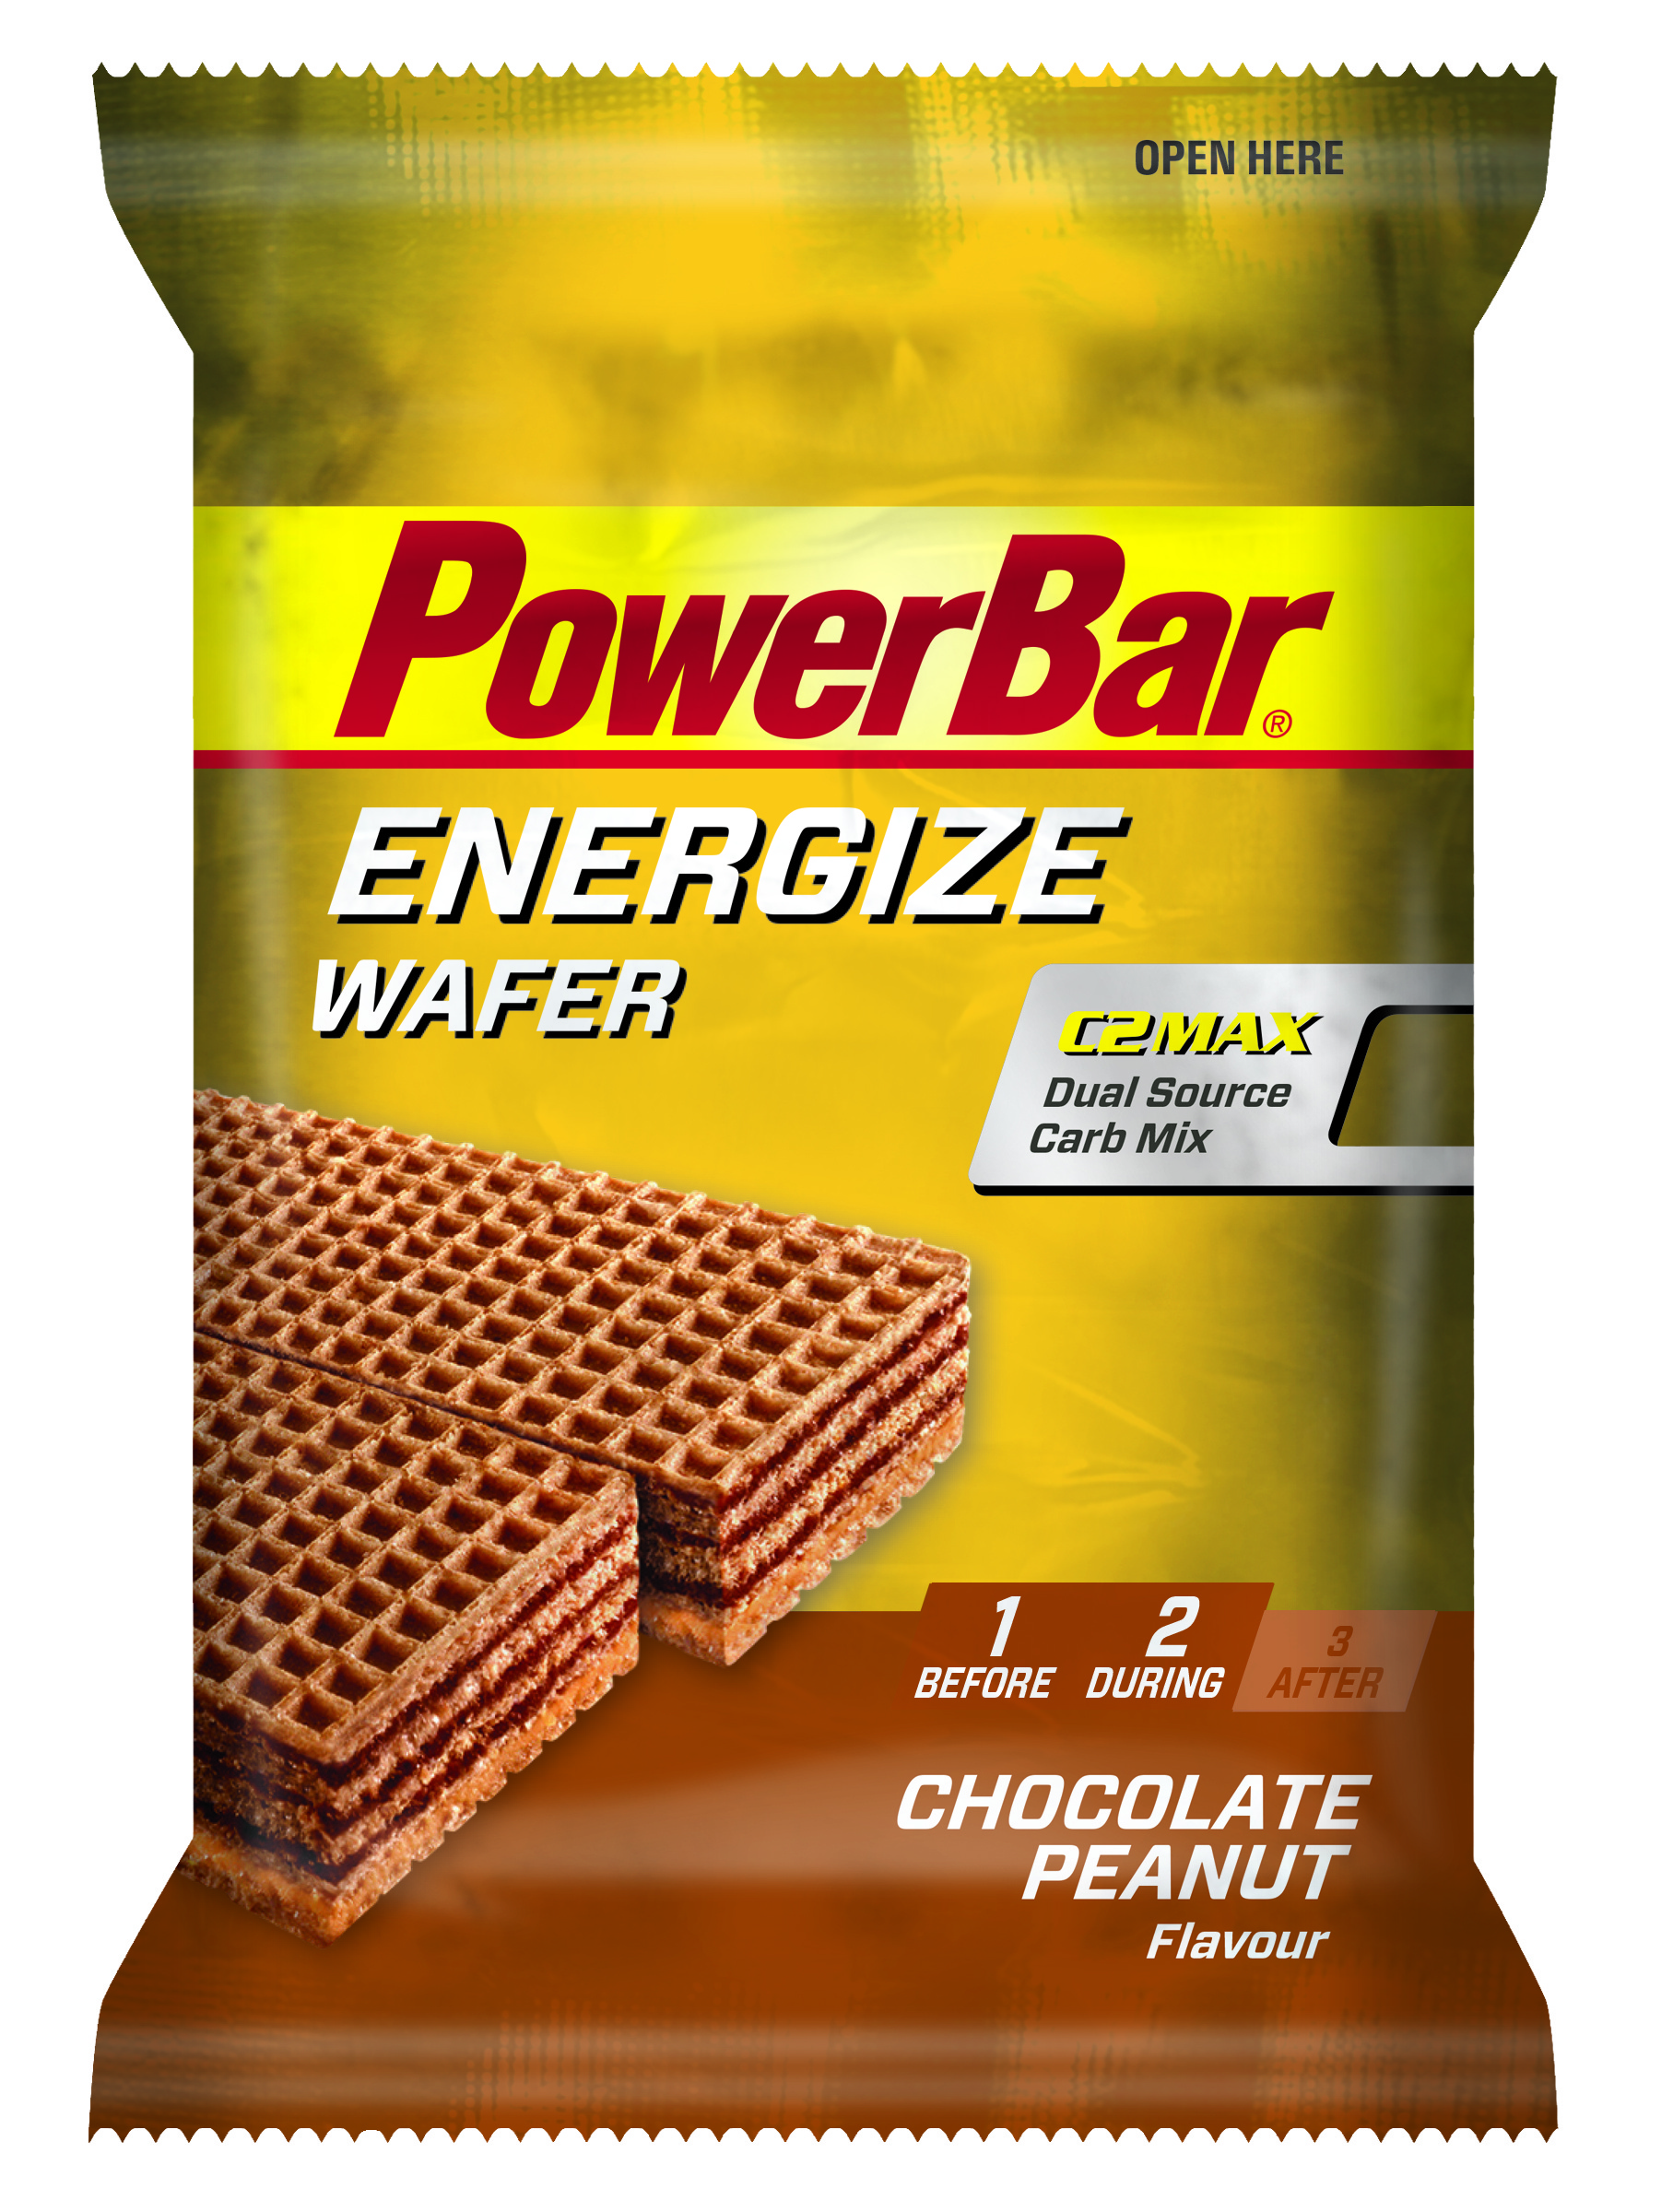 PowerBar Energize Wafer Chocolate Peanut